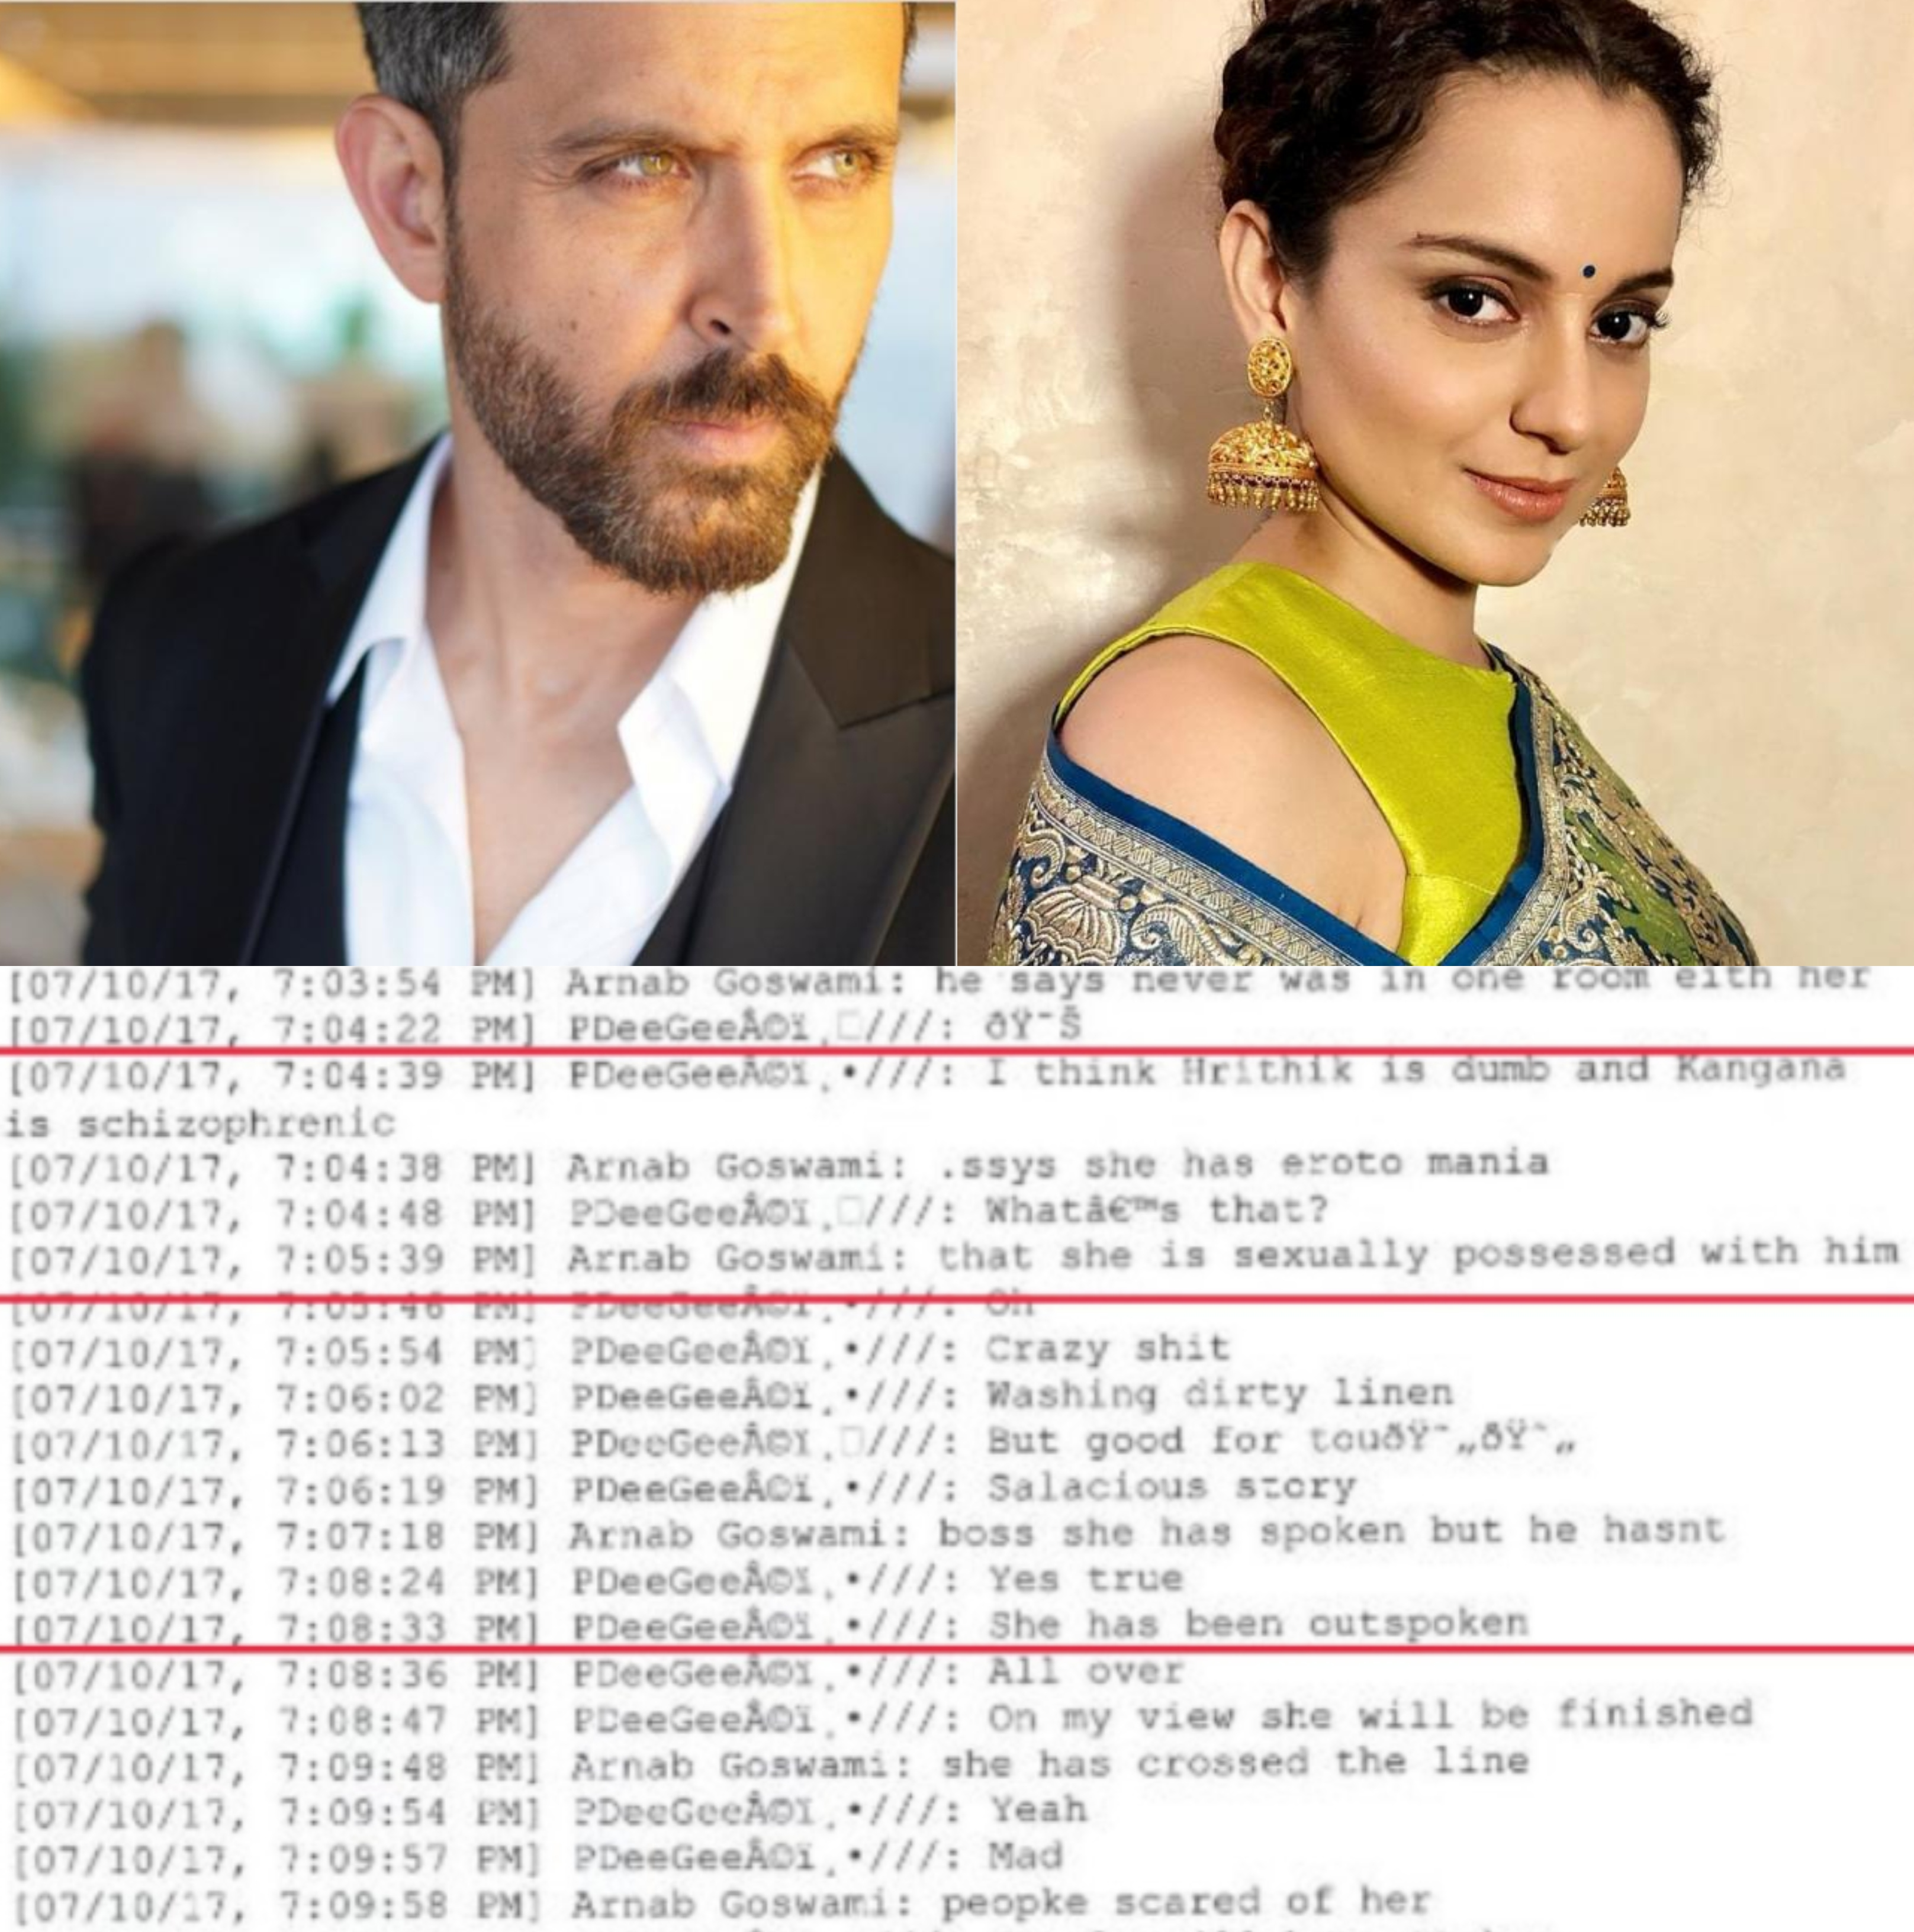 """Hrithik is Dumb, Kangana is sexually possessed with him"""", Arnab Goswami reveals in leaked whatsapp chats   PINKVILLA"""